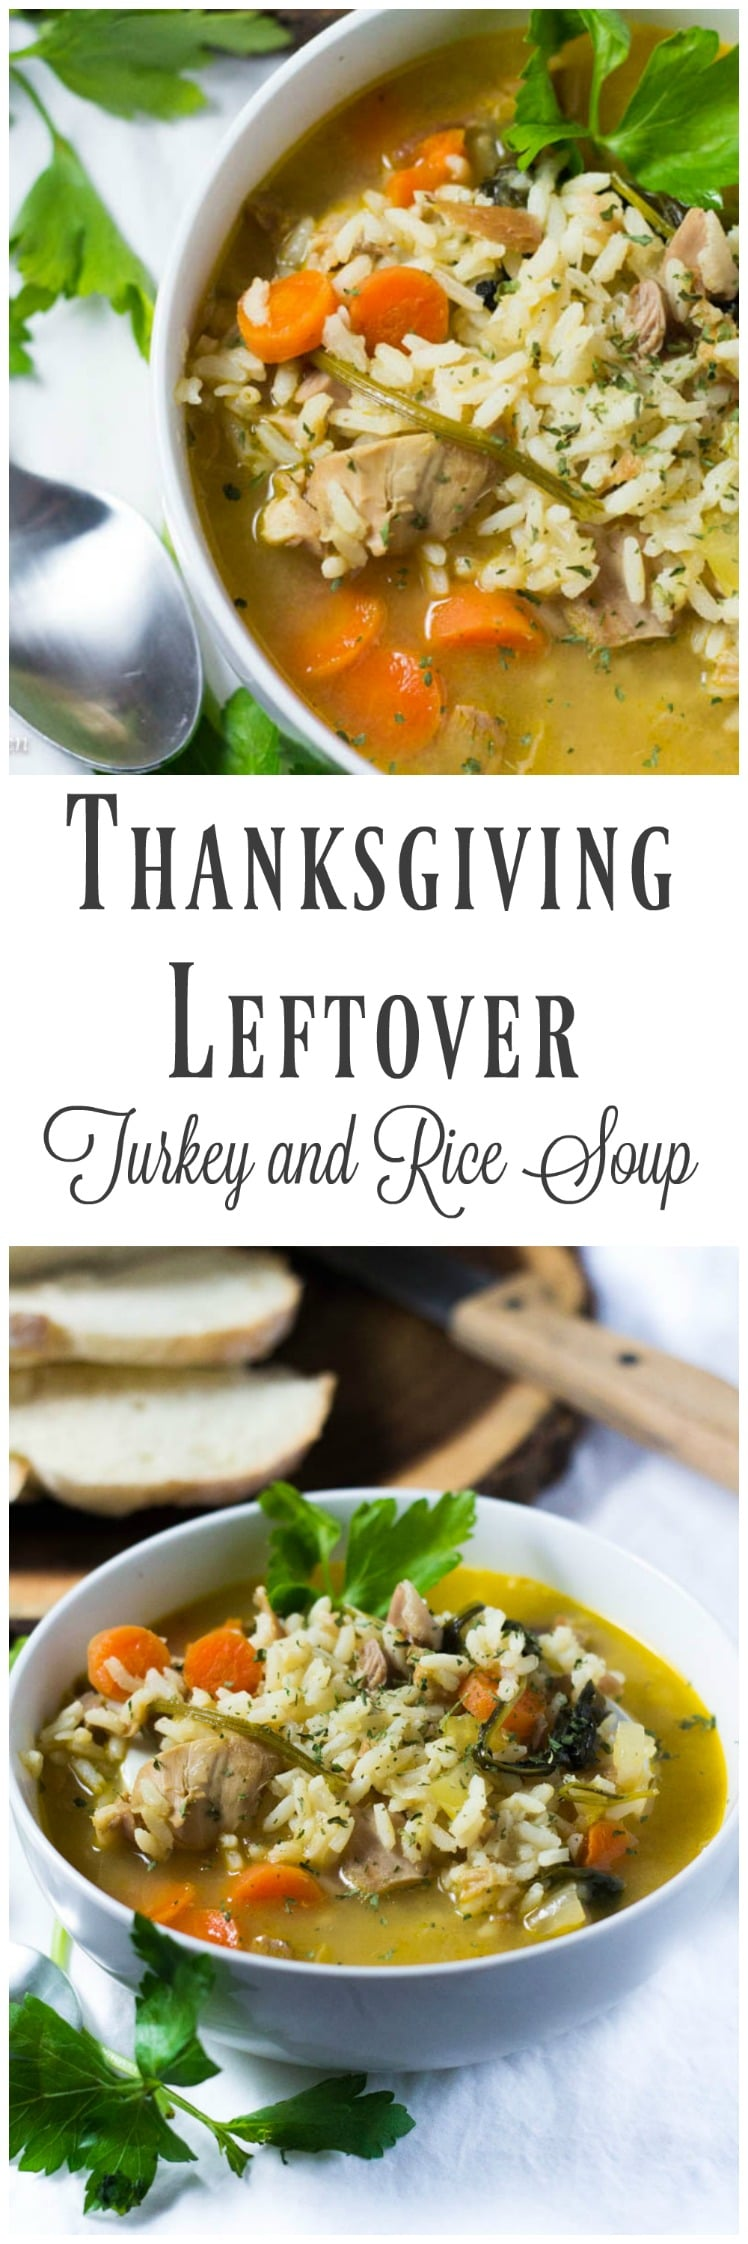 My leftover turkey and rice soup is the perfect comfort food after cooking for days for a Thanksgiving feast. Turn your Thanksgiving turkey into a super comforting and healthy soup in only 30 minutes and just a few ingredients!